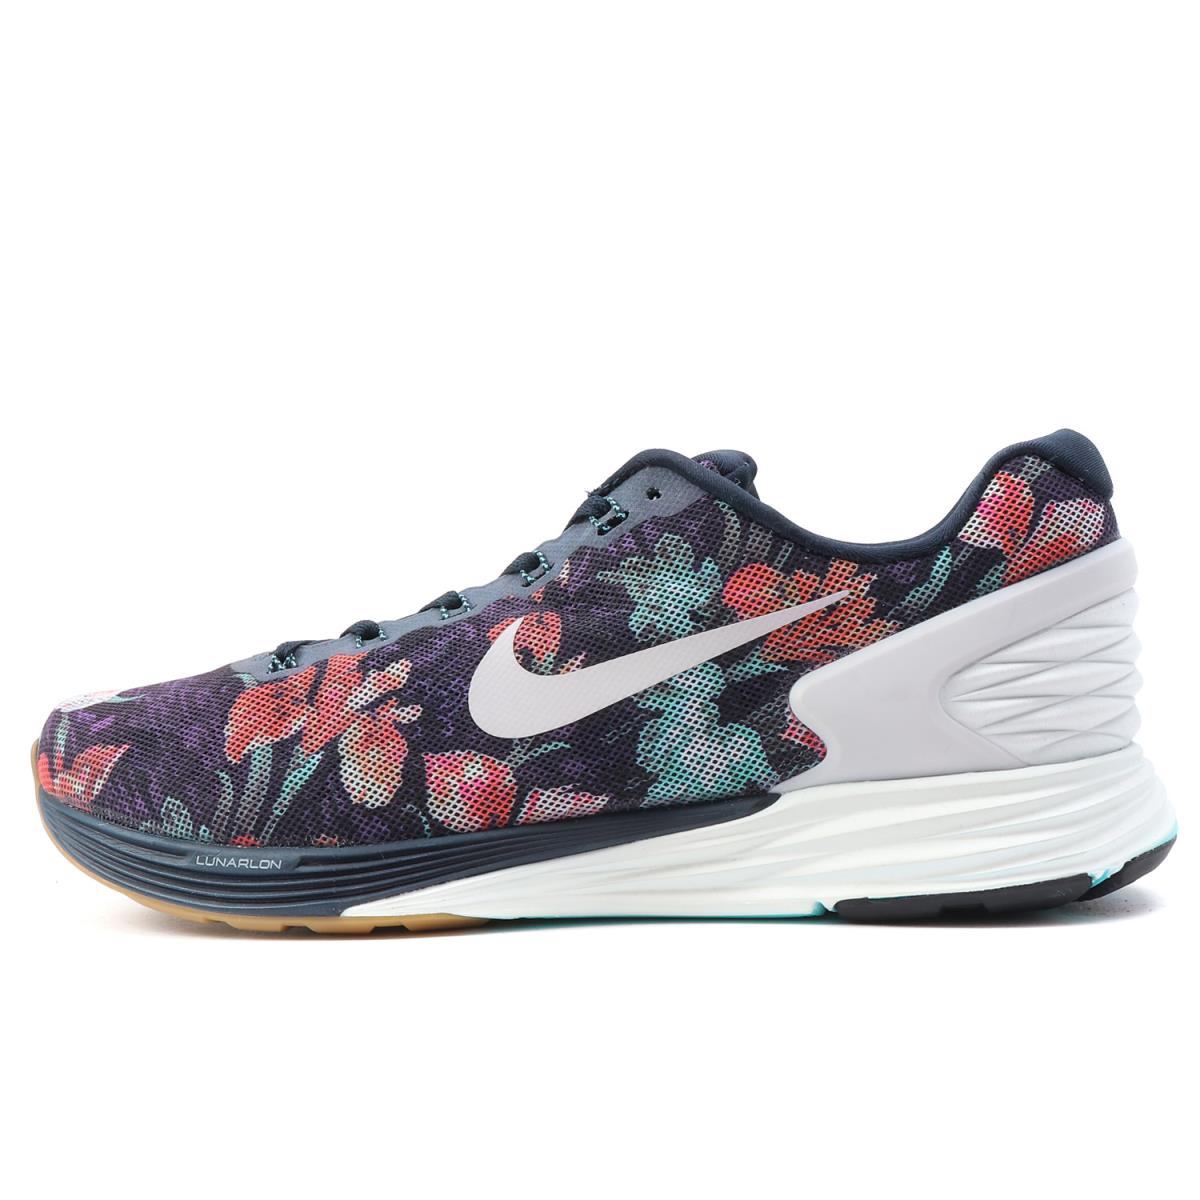 premium selection 8d77b 52b77 NIKE (Nike) LUNARGLIDE 6 PHOTOSYNTH (776,259-401) da Guo Processed Aconite  Root Deanne X summit white US11(29cm)